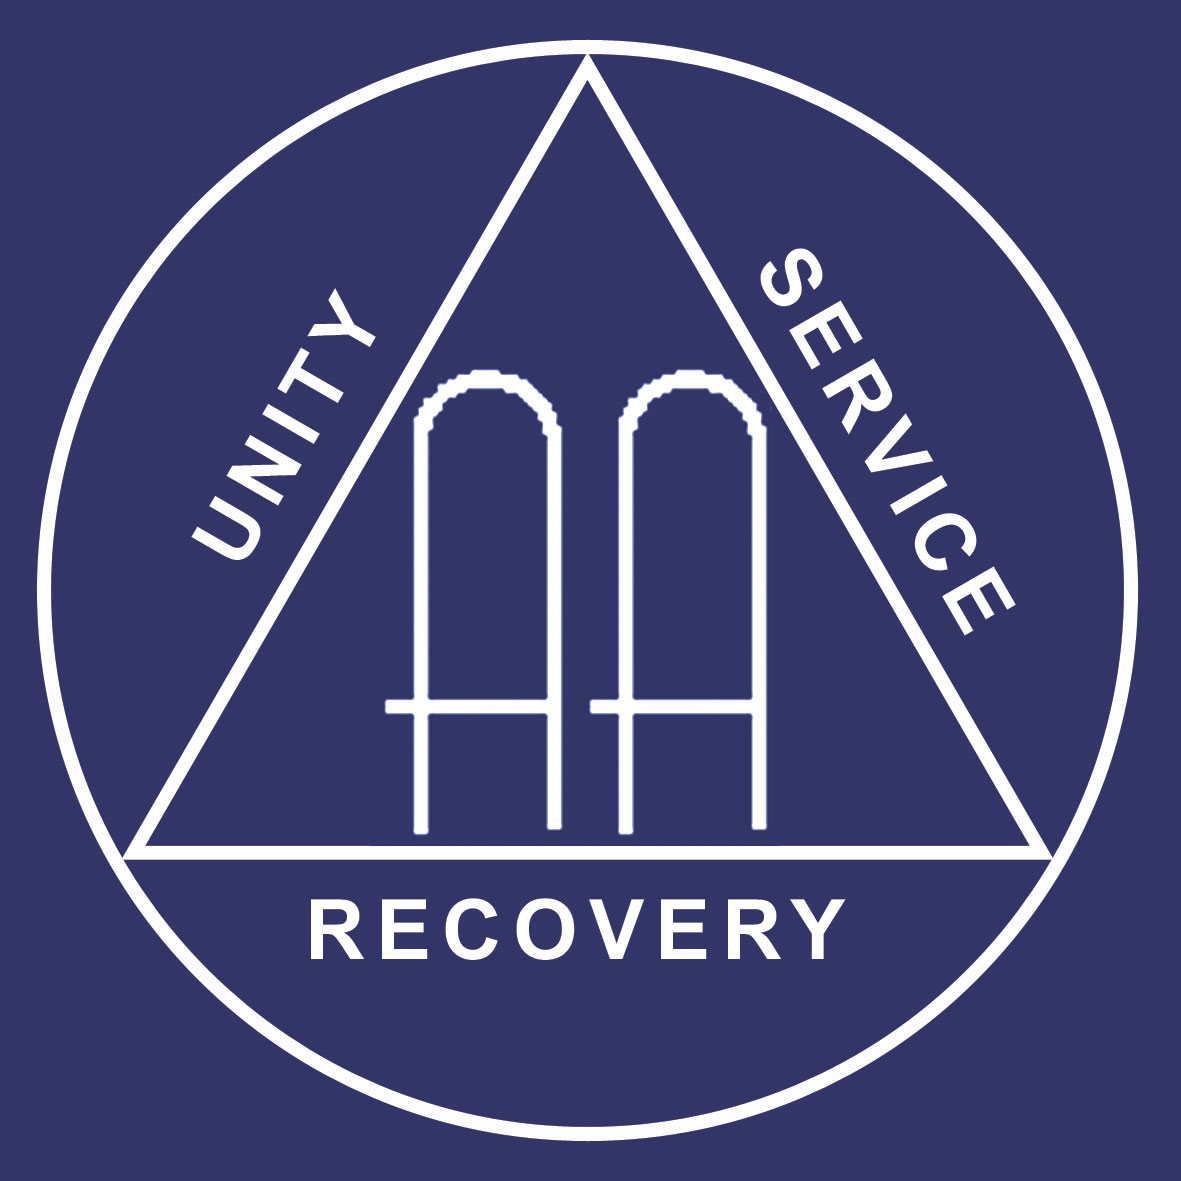 the acute psychology in alcoholics anonymous meeting